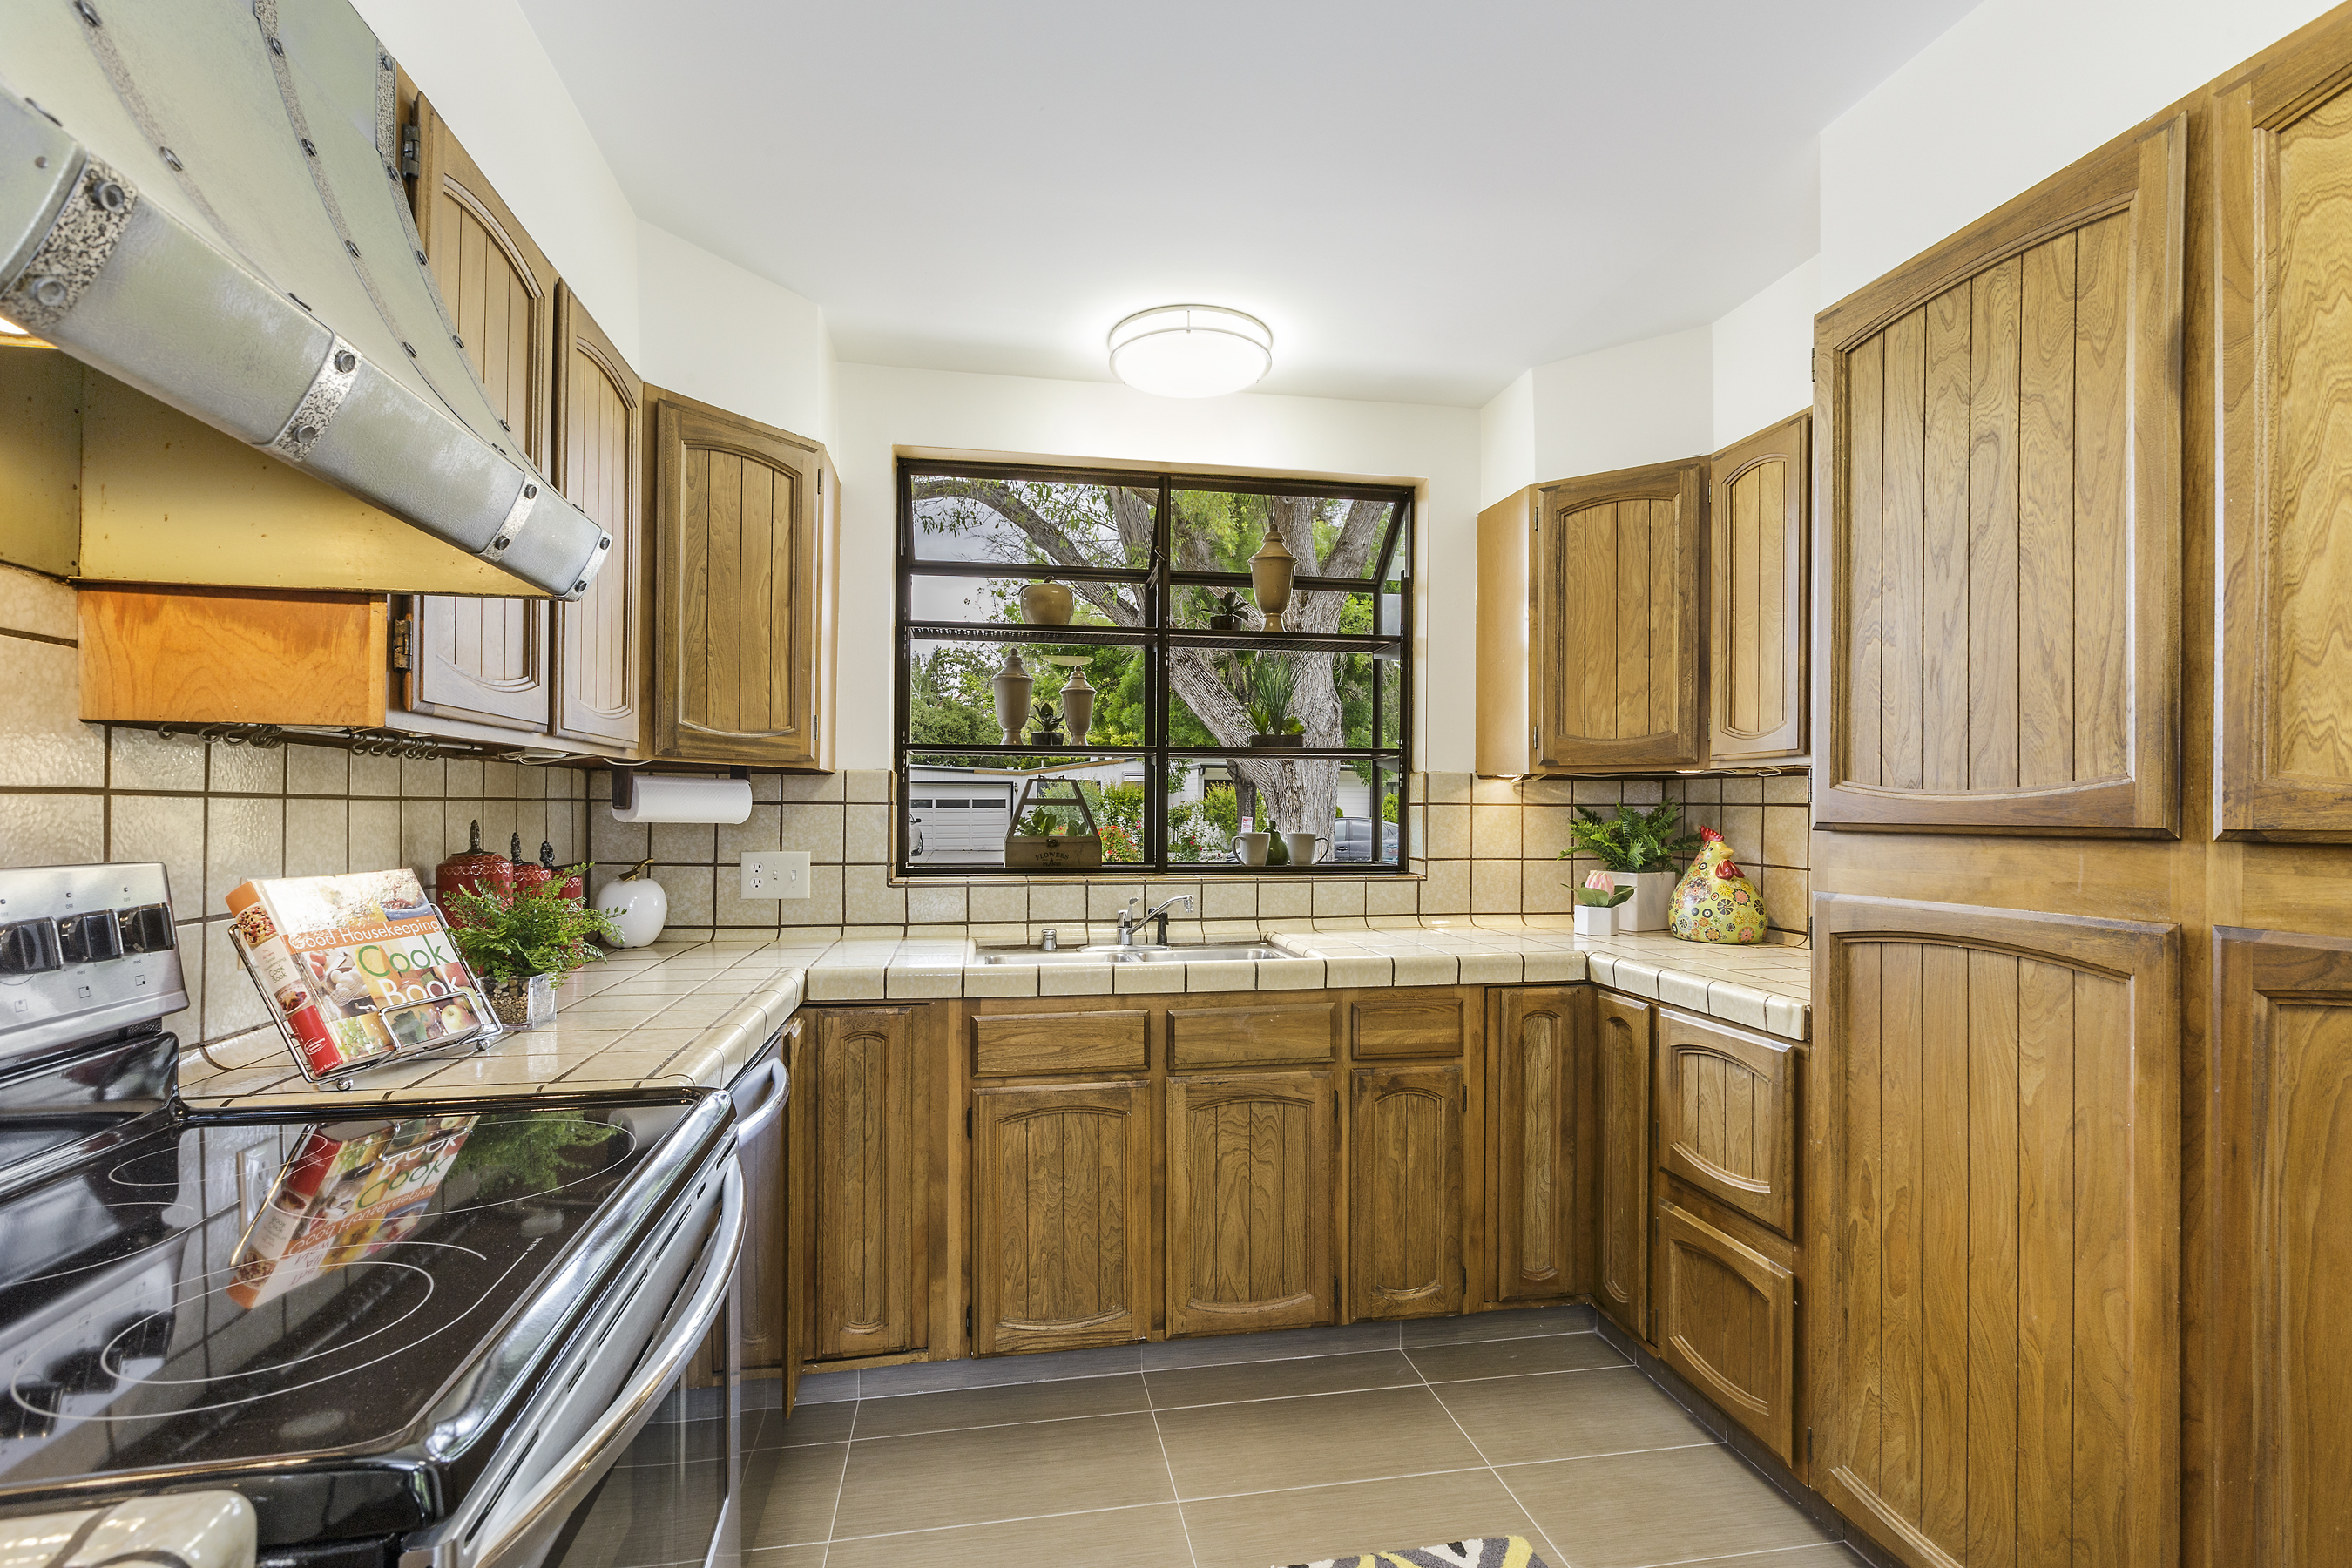 10-172-Atherwood-kitchen-high-res